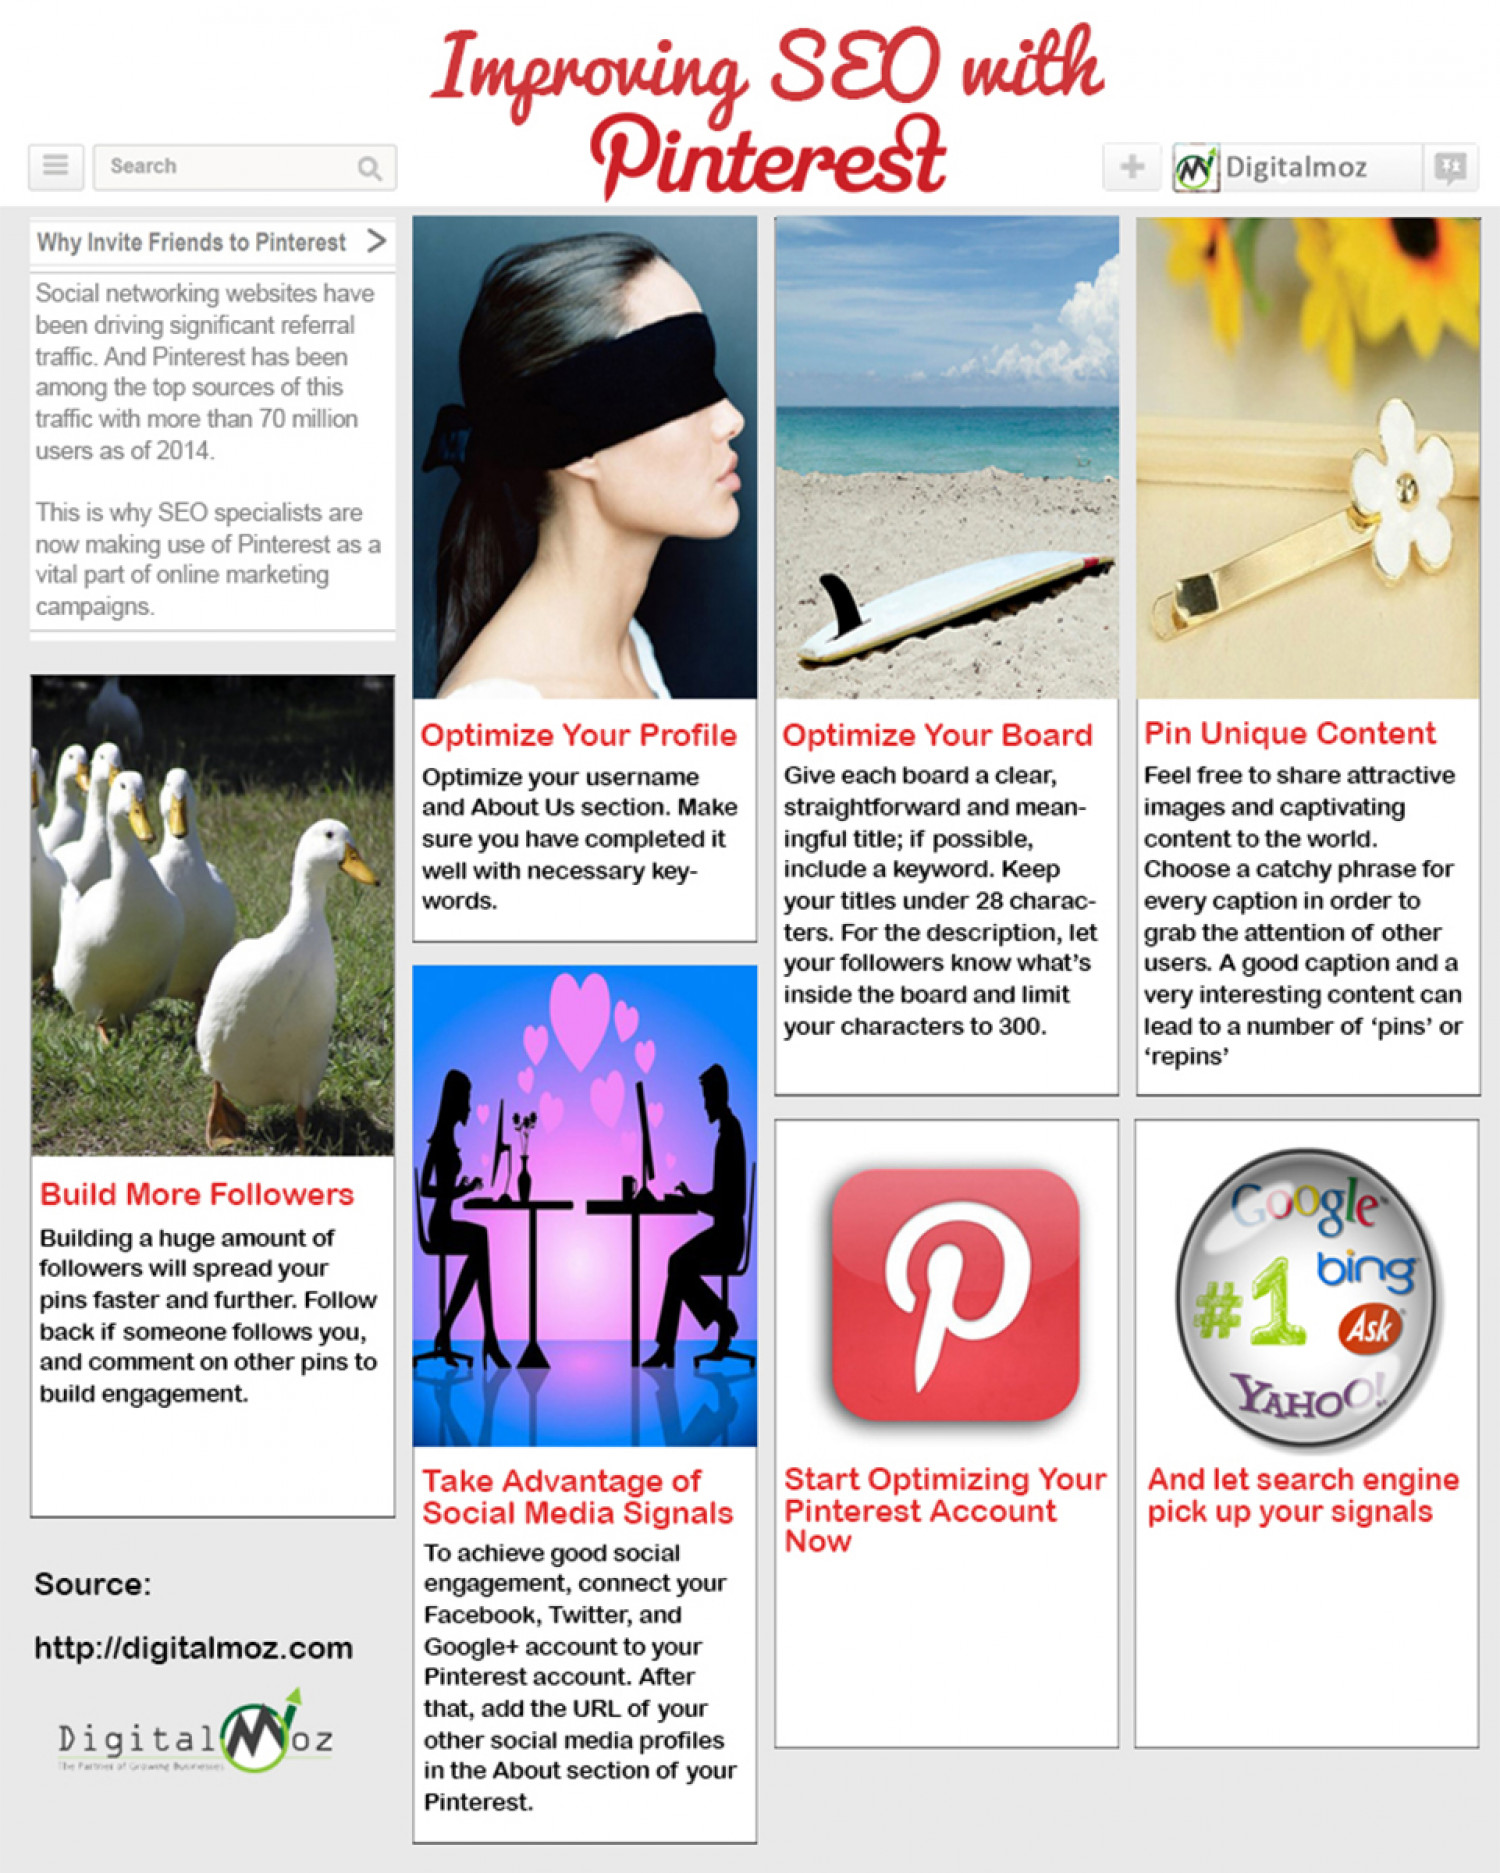 Improving SEO with Pinterest Infographic